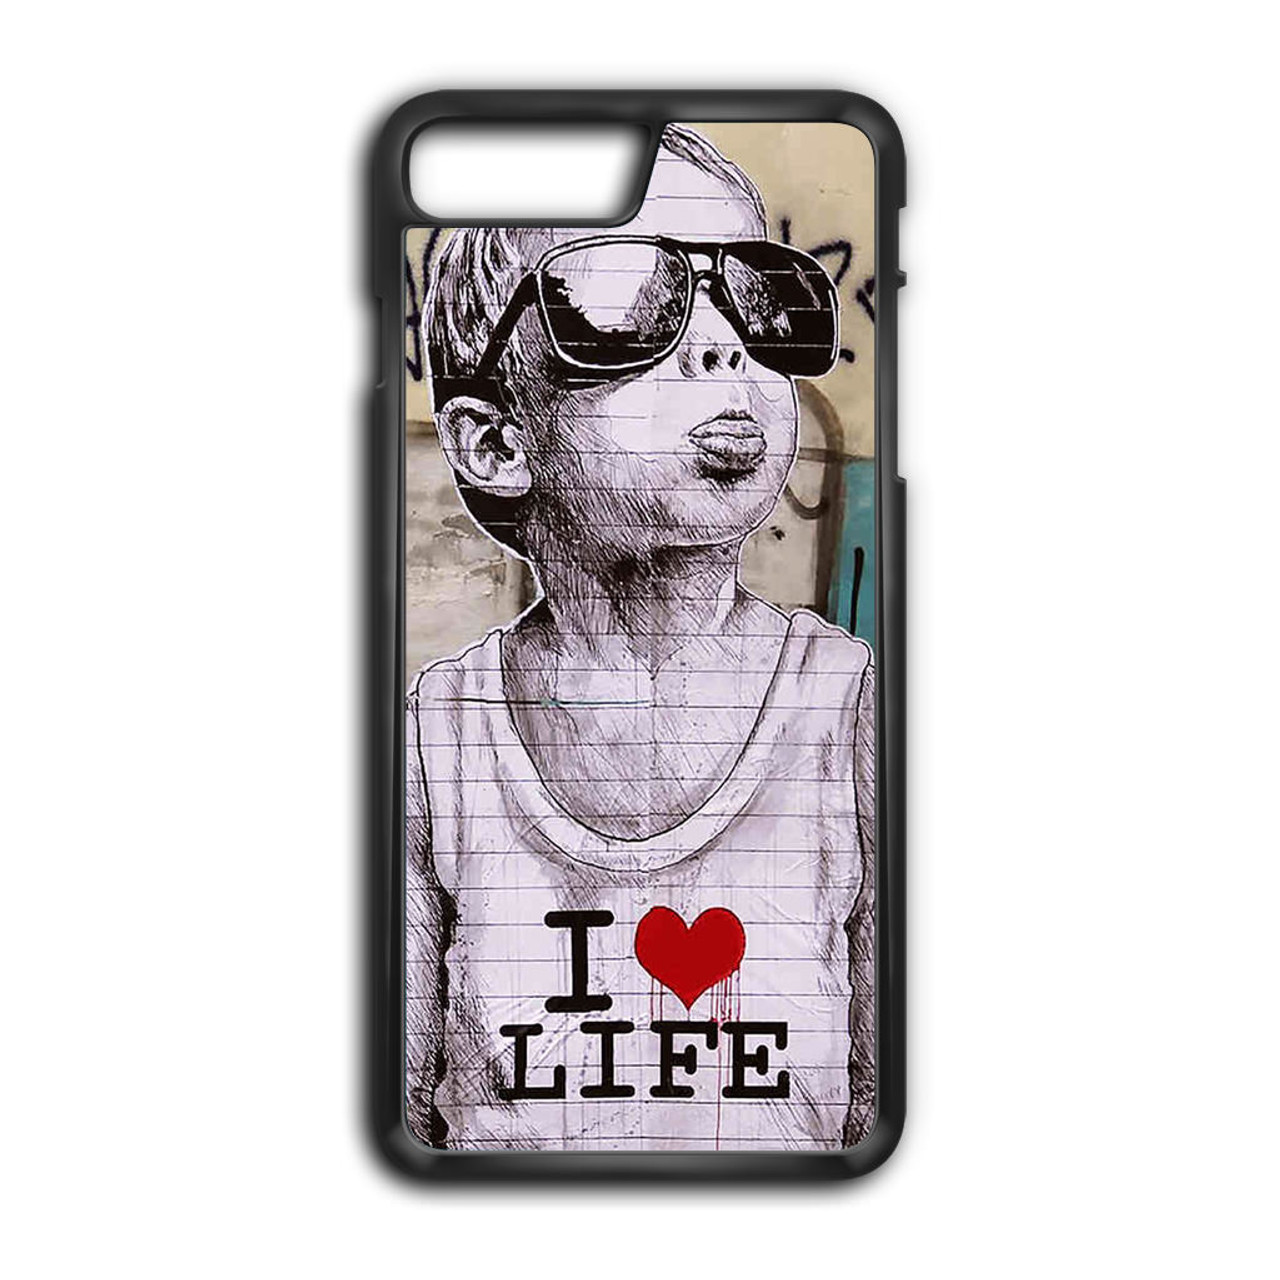 banksy phone case iphone 7 plus